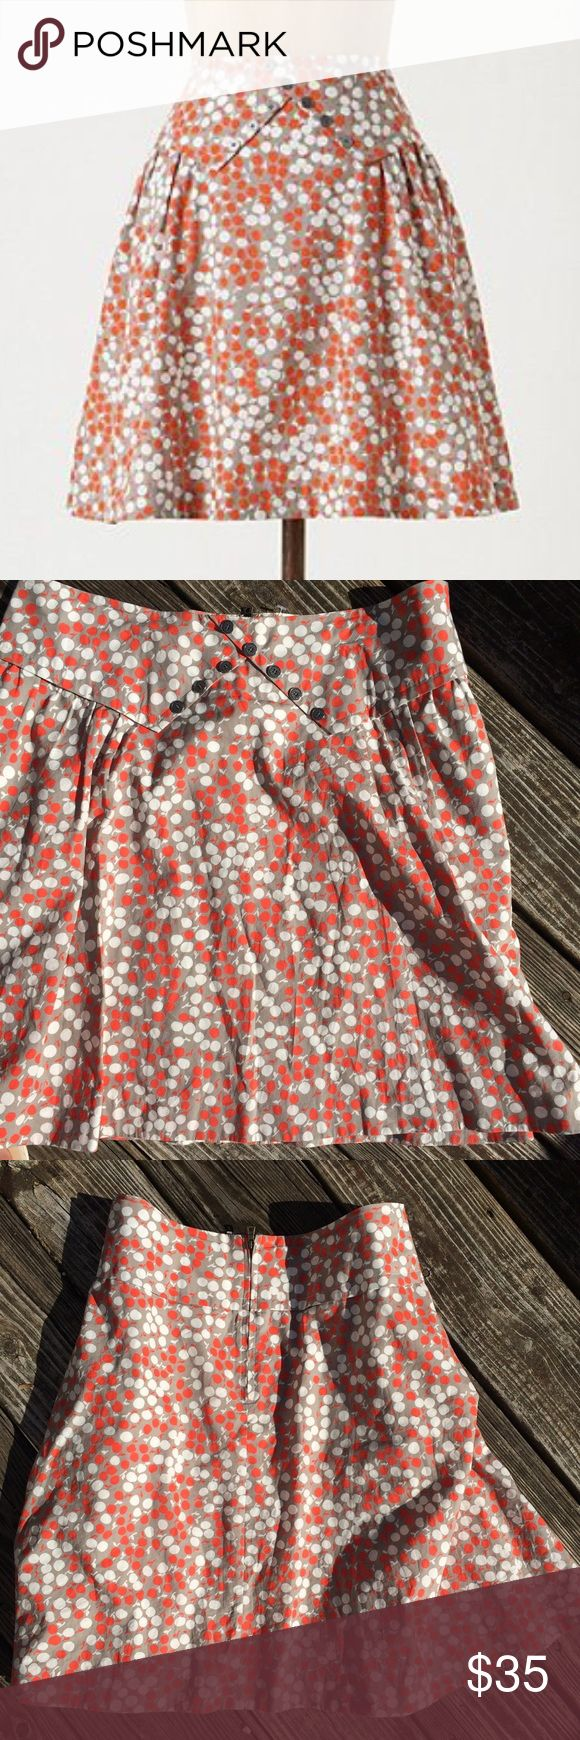 Anthropologie   Girls from Savoy Lapel Skirt Girls from Savoy for Anthropologie - Taupe skirt with coral and white apple print. The top of the skirt has a faux lapel with silver buttons to give the look of a collared Button Down shirt. Excellent condition. Anthropologie Skirts A-Line or Full